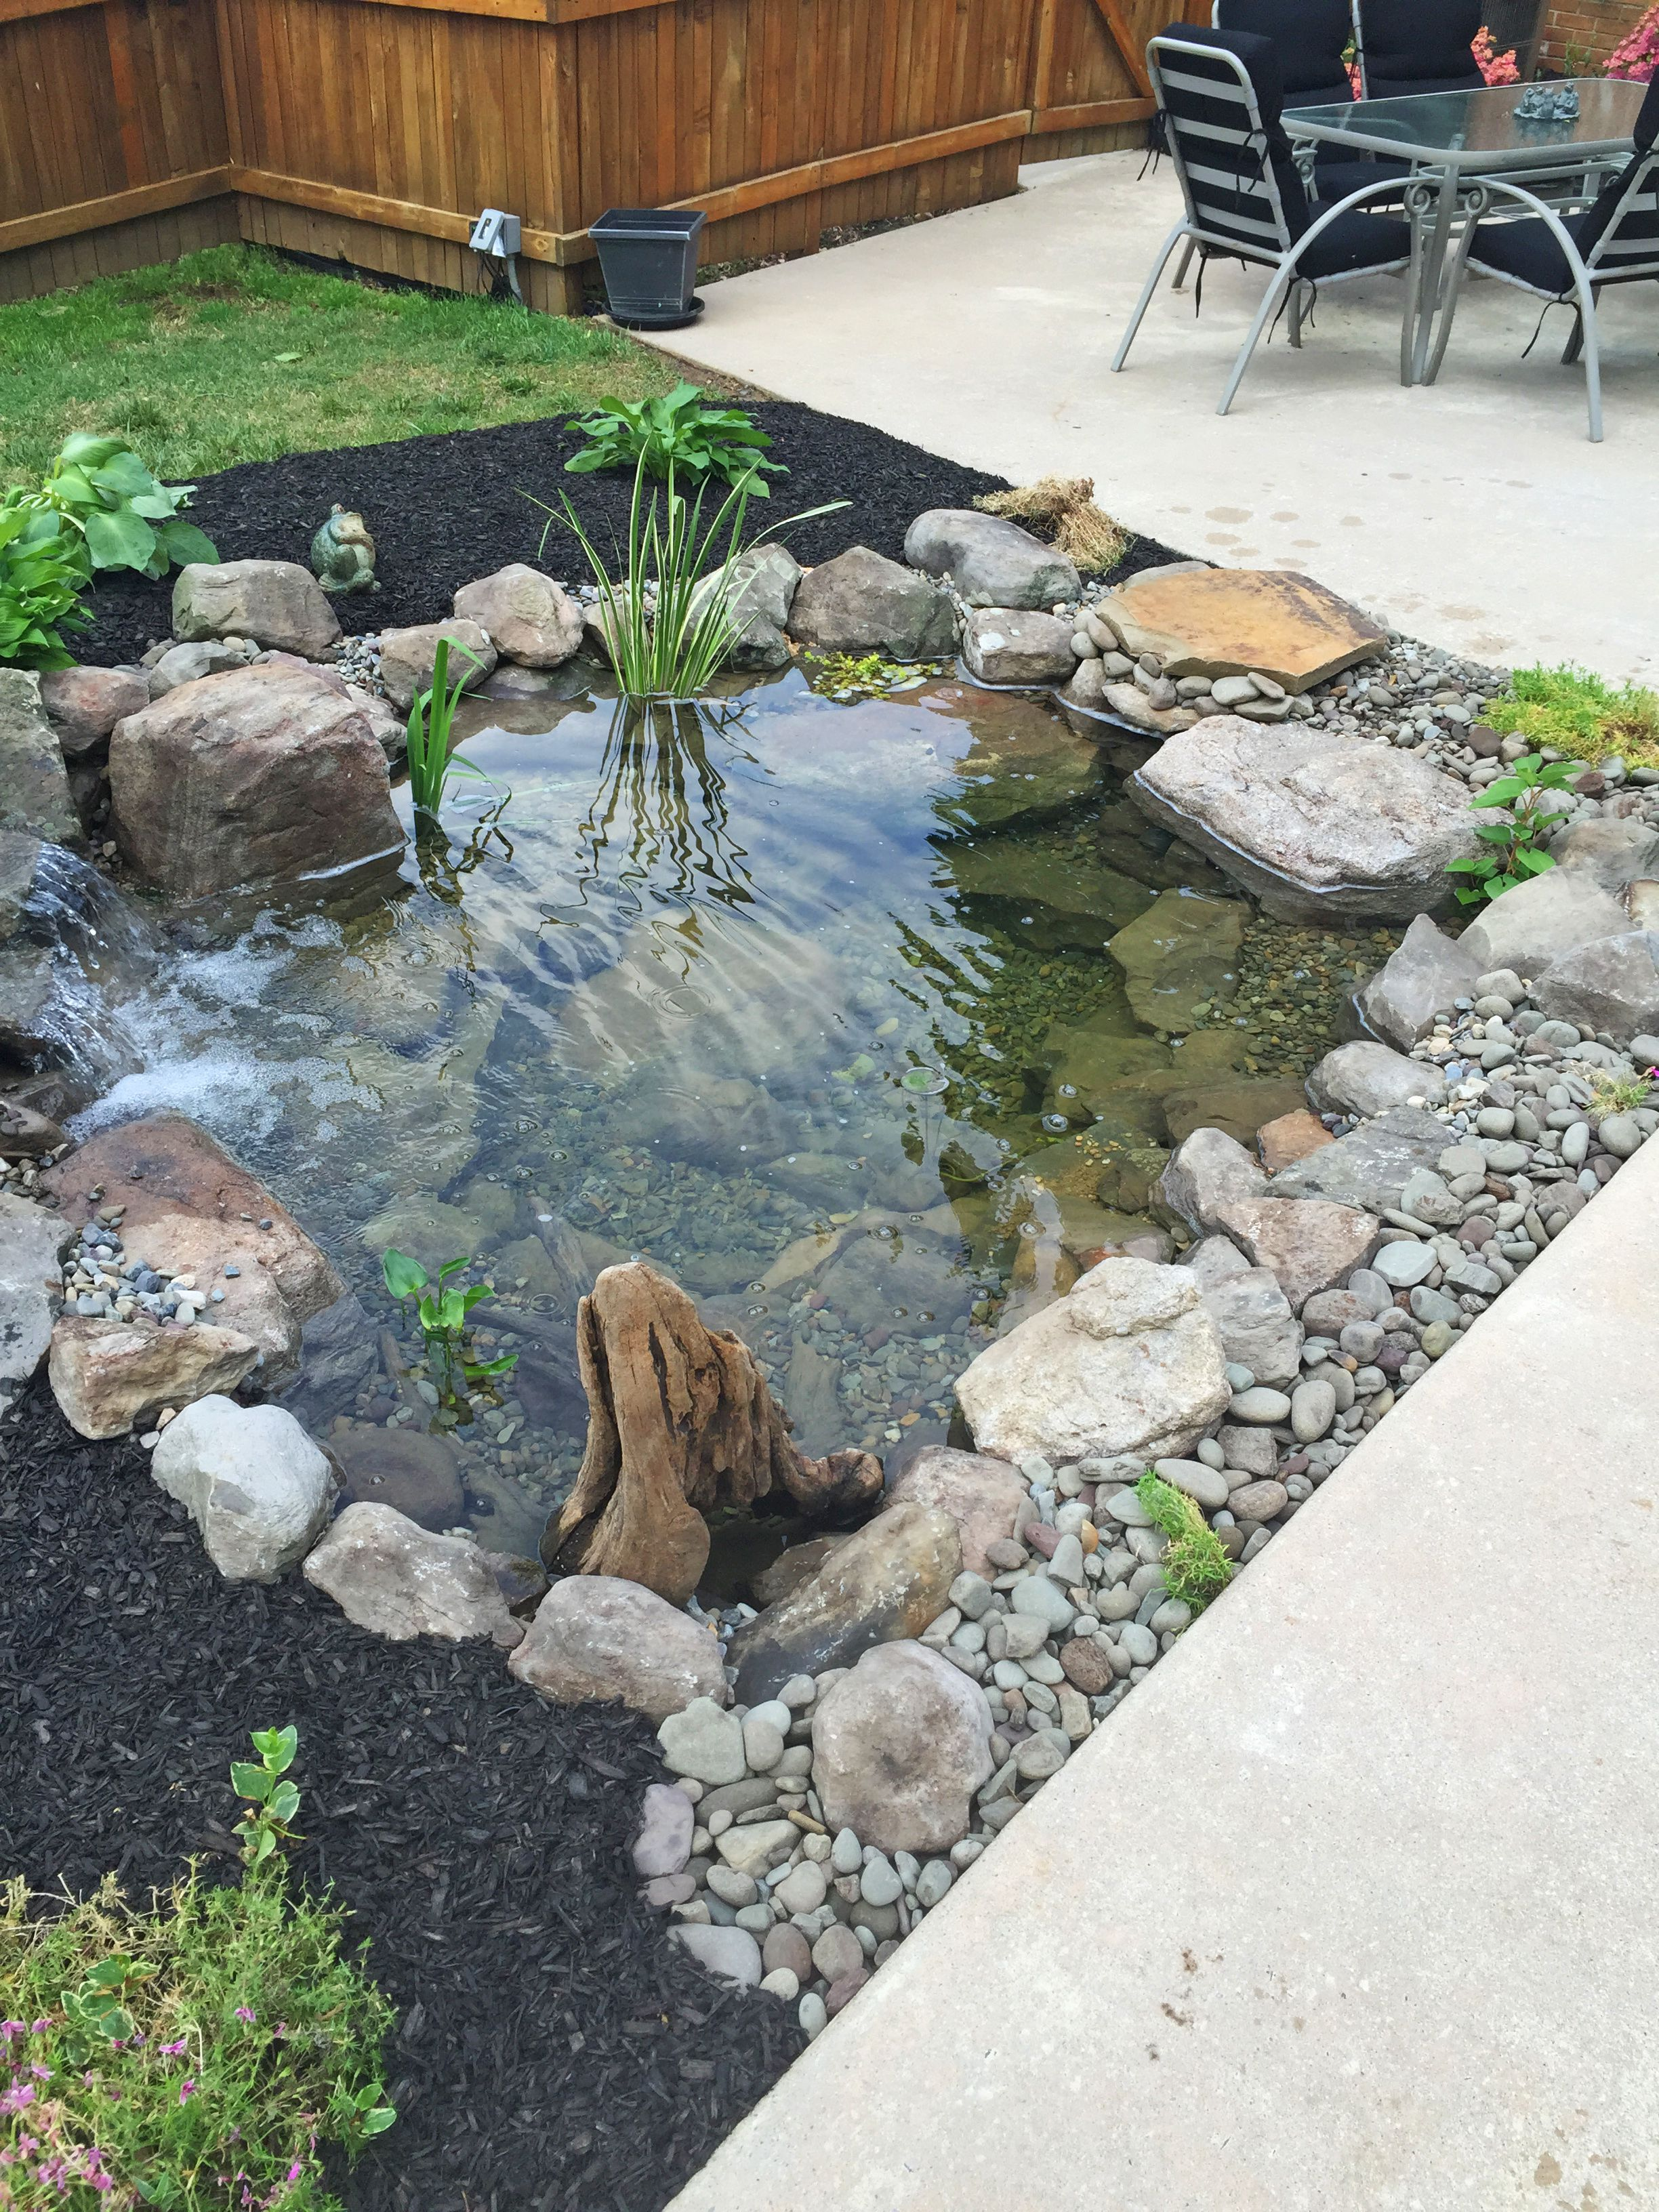 Backyard fish pond waterfall koi water garden waterscapes for Diy fish pond